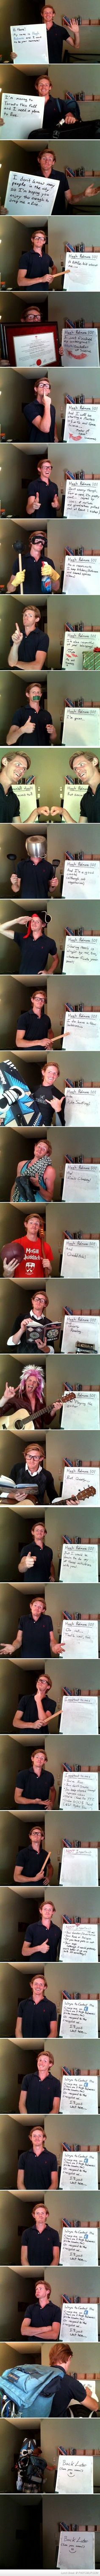 He had me at Quidditch! I feel like I've pinned this already, but this guy wins. Also, I kinda want a follow up - like, did he find an awesome roommate?